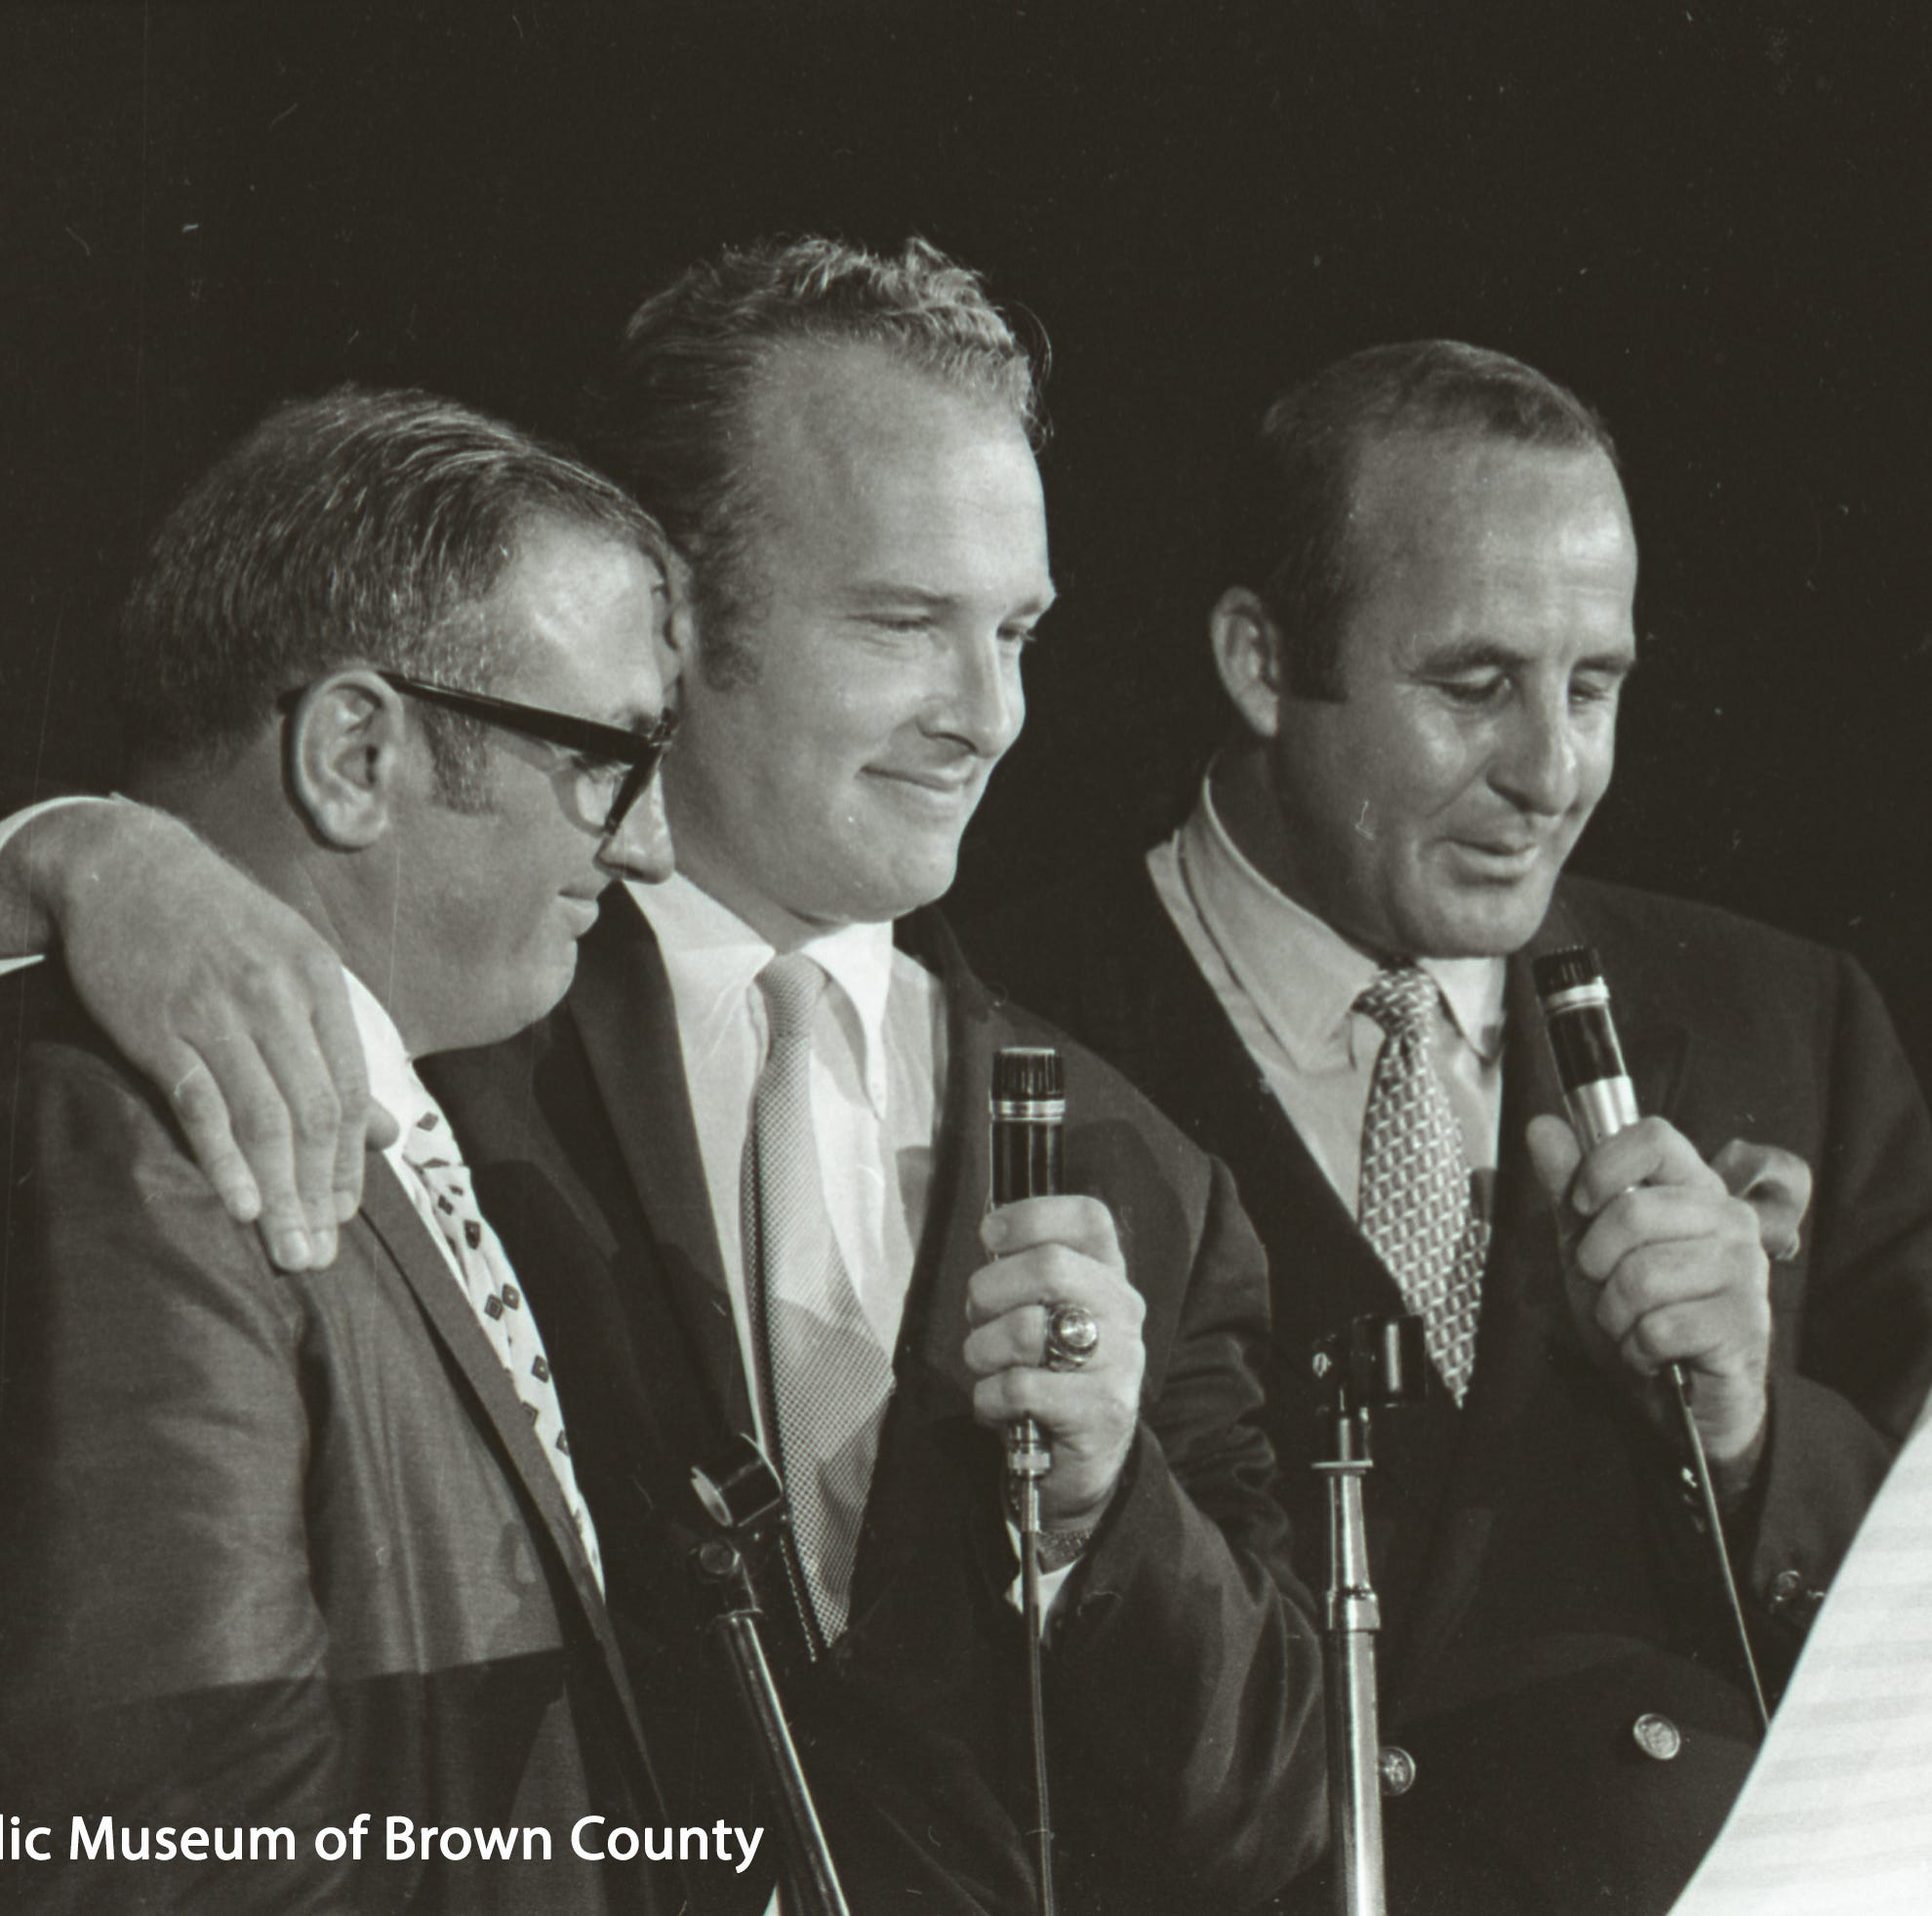 Packers 'Golden Boy' Paul Hornung once serenaded Vince Lombardi at Brown County arena